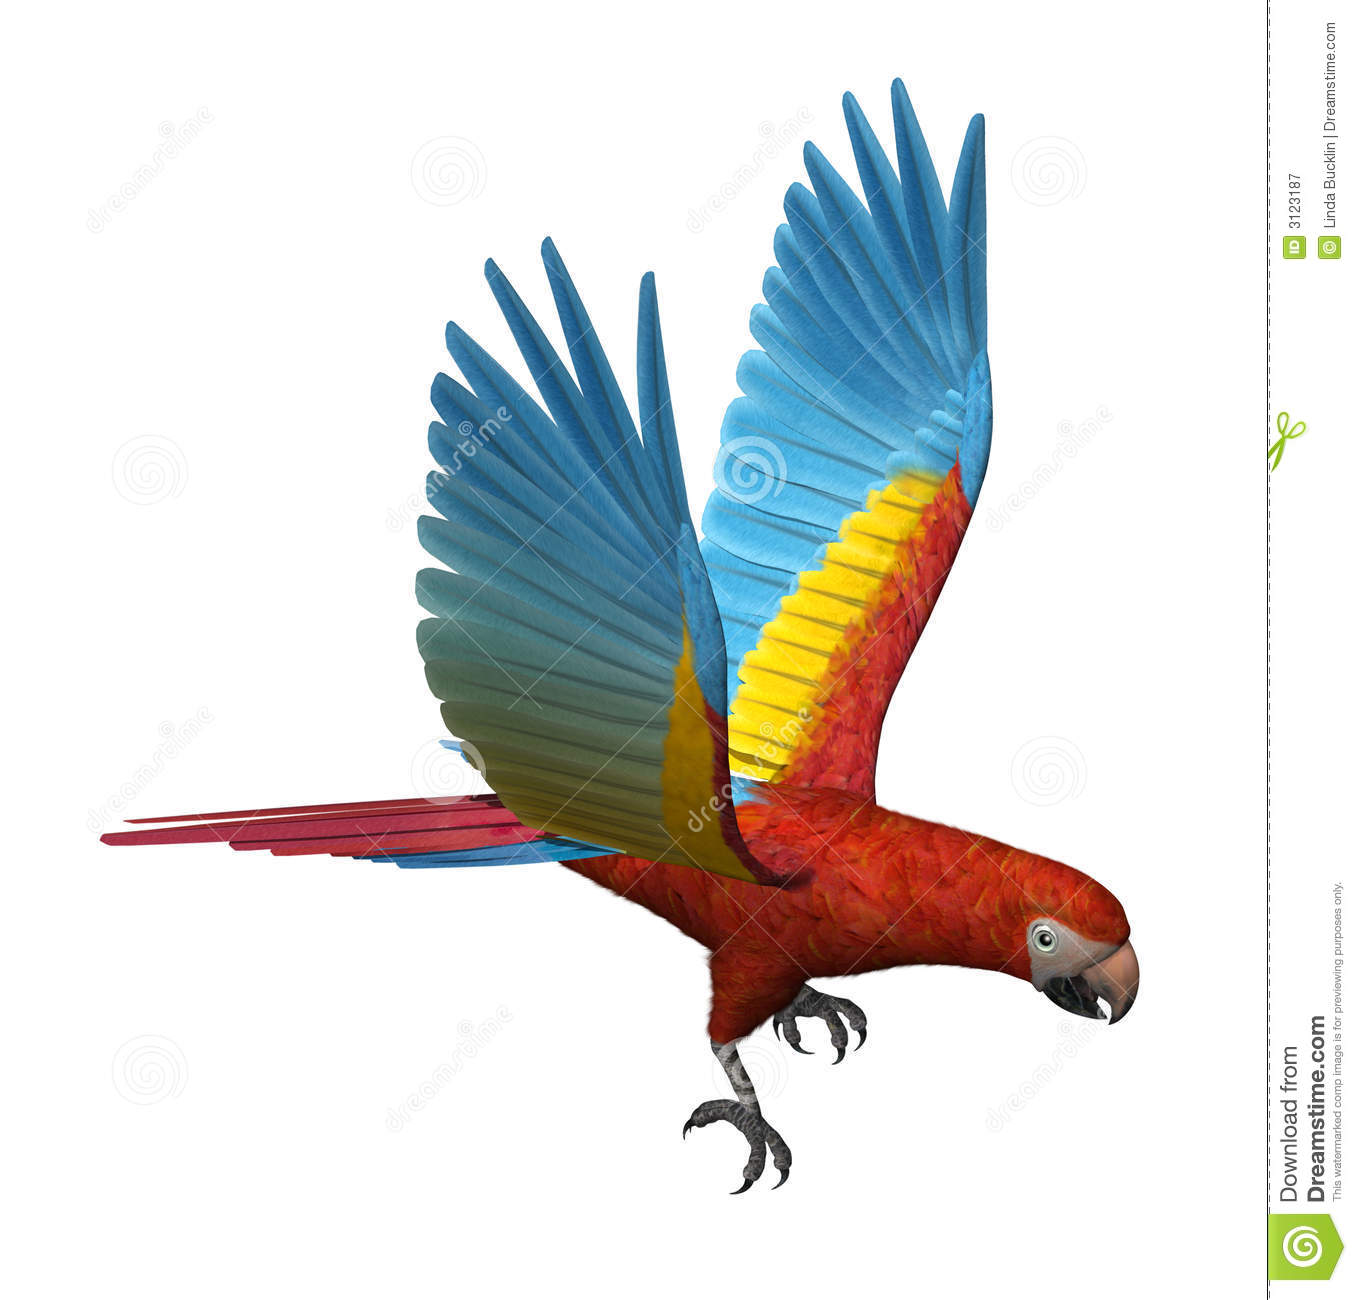 Scarlet Macaw clipart #11